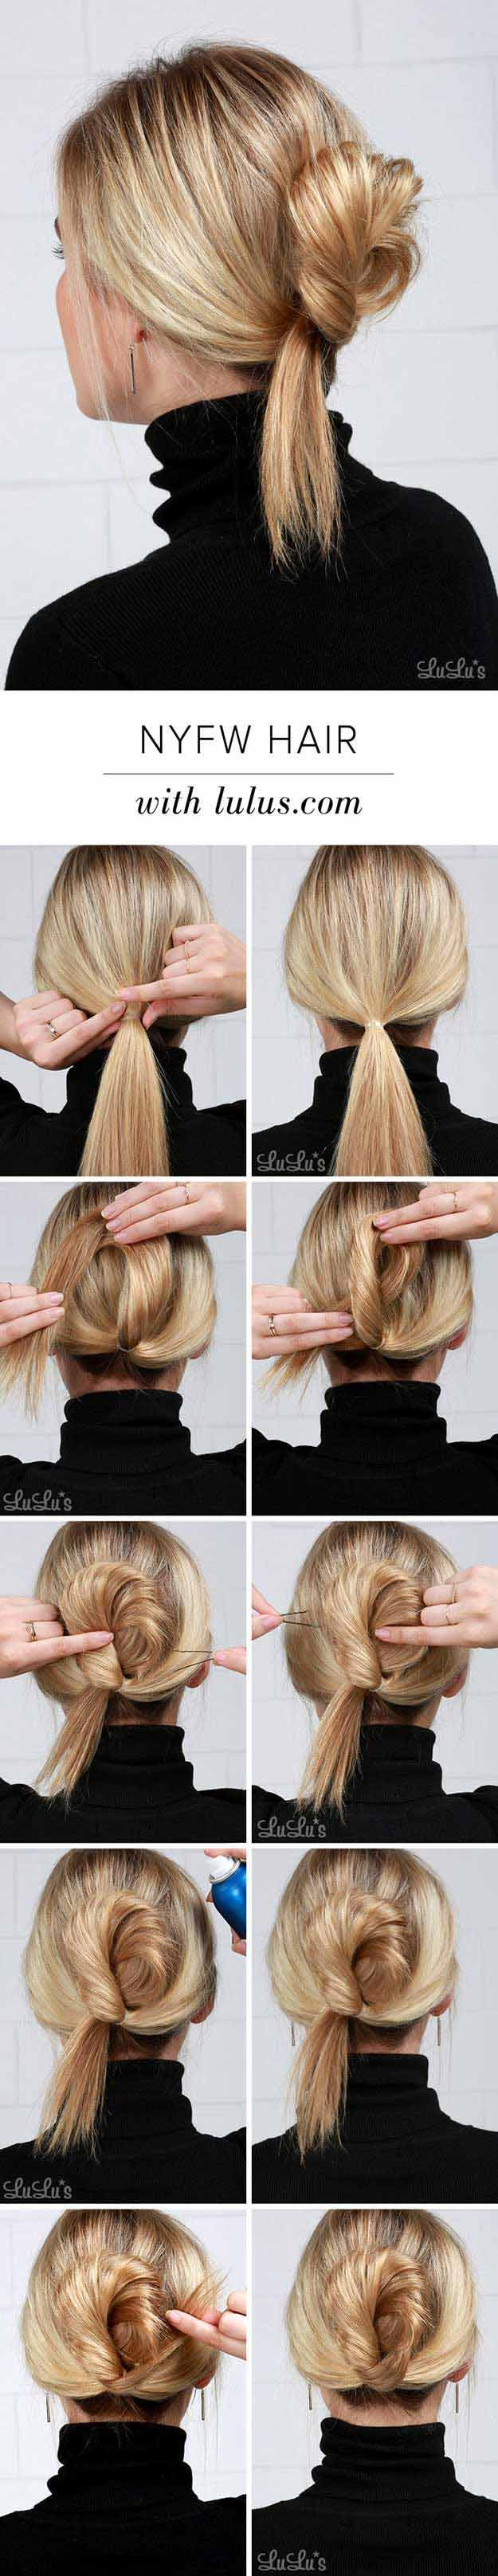 Best Summer Hairstyles - NYFW Inspired Hair Tutorial - Easy And Beautiful Short Hairstyles And Easy Summer Hairstyles That Are Cute And Work Great For Medium Hair, Long Hair, Short Hair, And Very Short Hair. Hairstyles, Undo's, Braids, And Ponytail Looks To Keep You Cool This Summer. Great Step By Step Tutorials And Tricks For Teens And Quick And Cute Looks For Brunettes With Shoulder Length Hair. Great Summer Hairstyles For The Beach, For Any Color, And Special Hacks For No Heat Boho Looks…